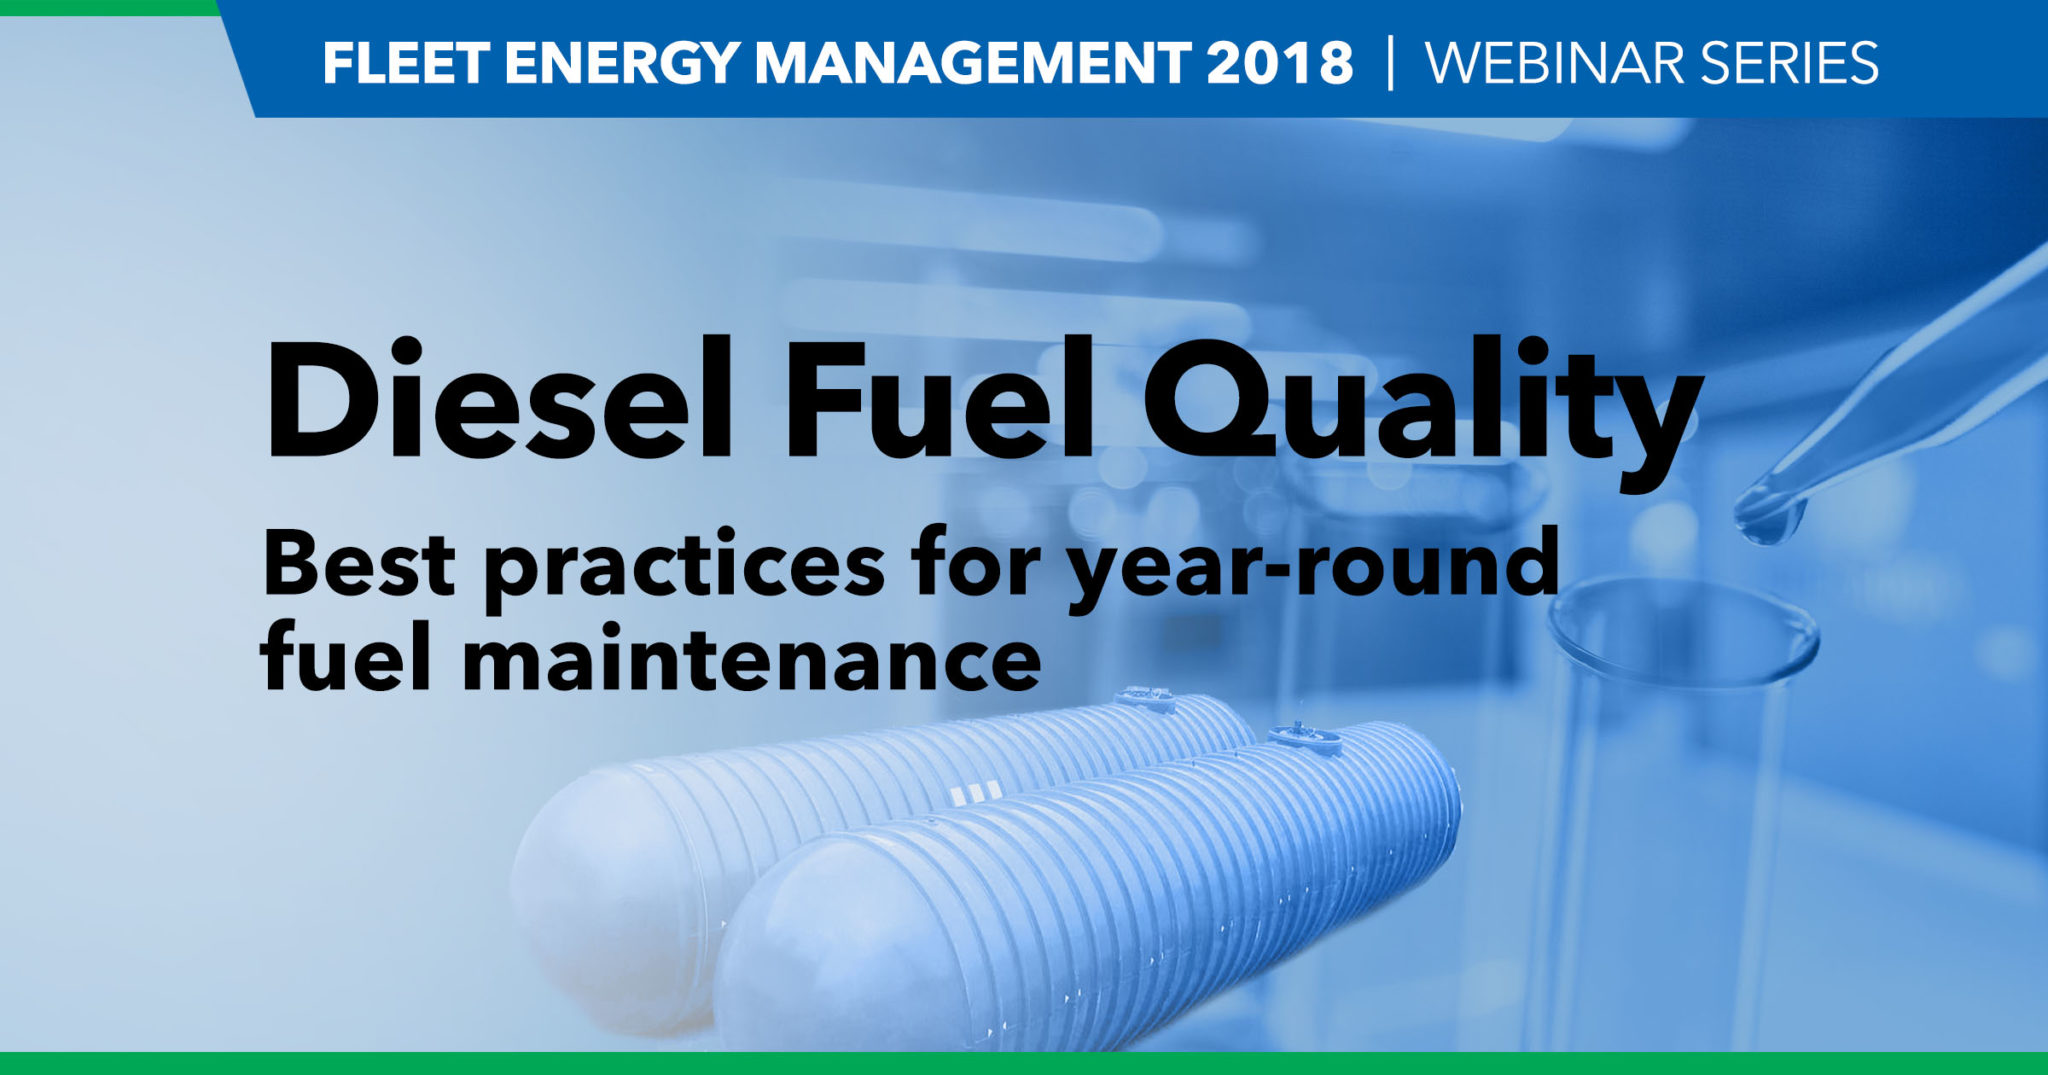 DEF 2018: Diesel Fuel Quality: Best practices for year-round fuel maintenance